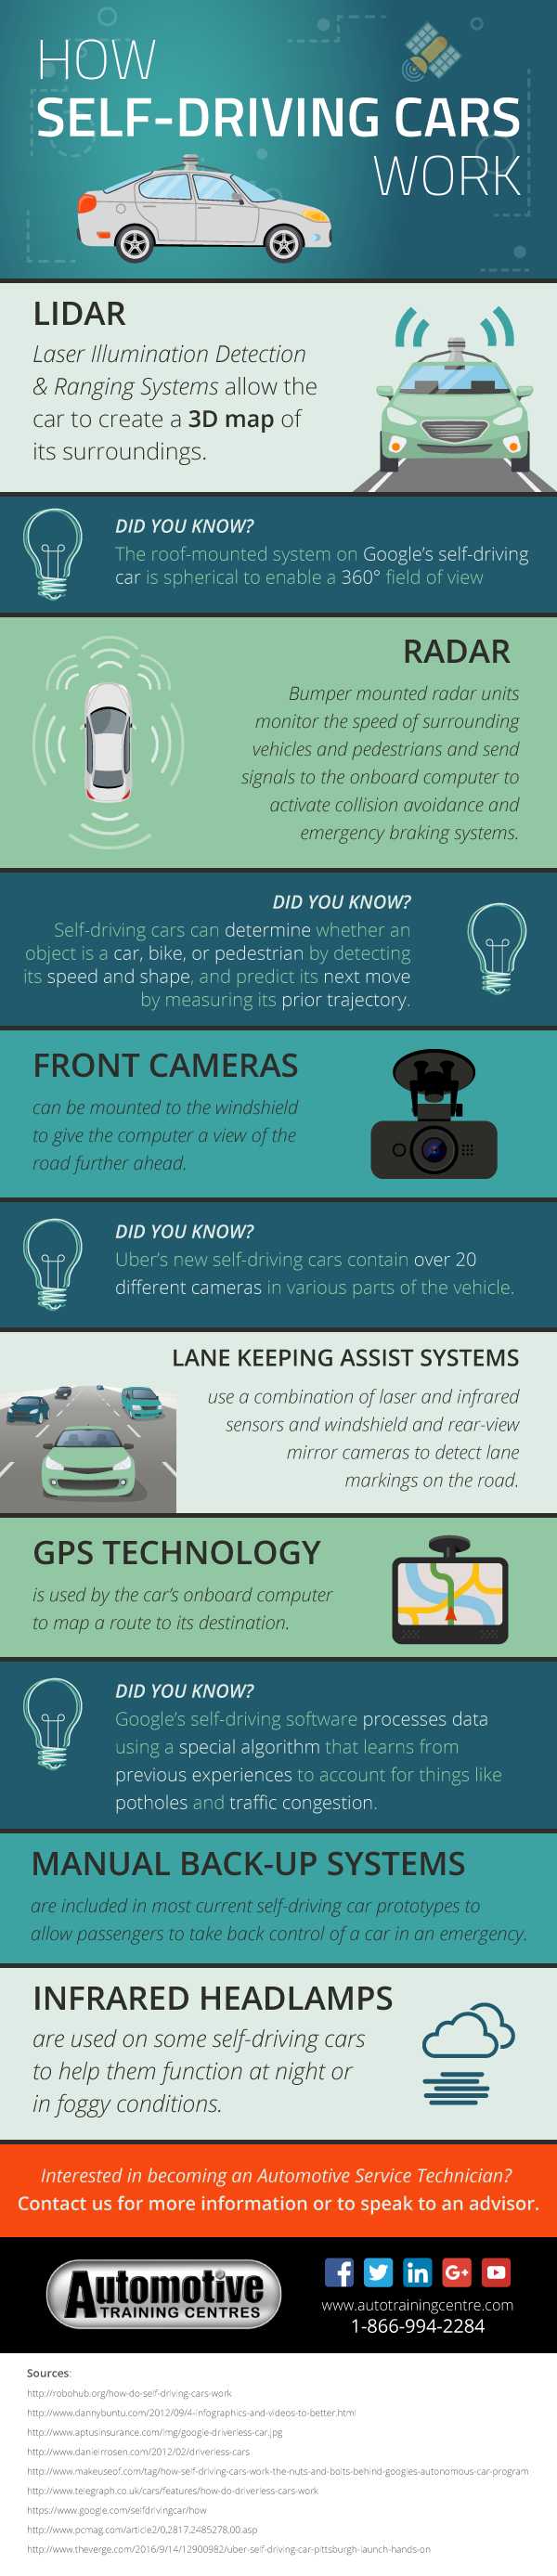 atc-cambridge_infographic_selfdrivingcars